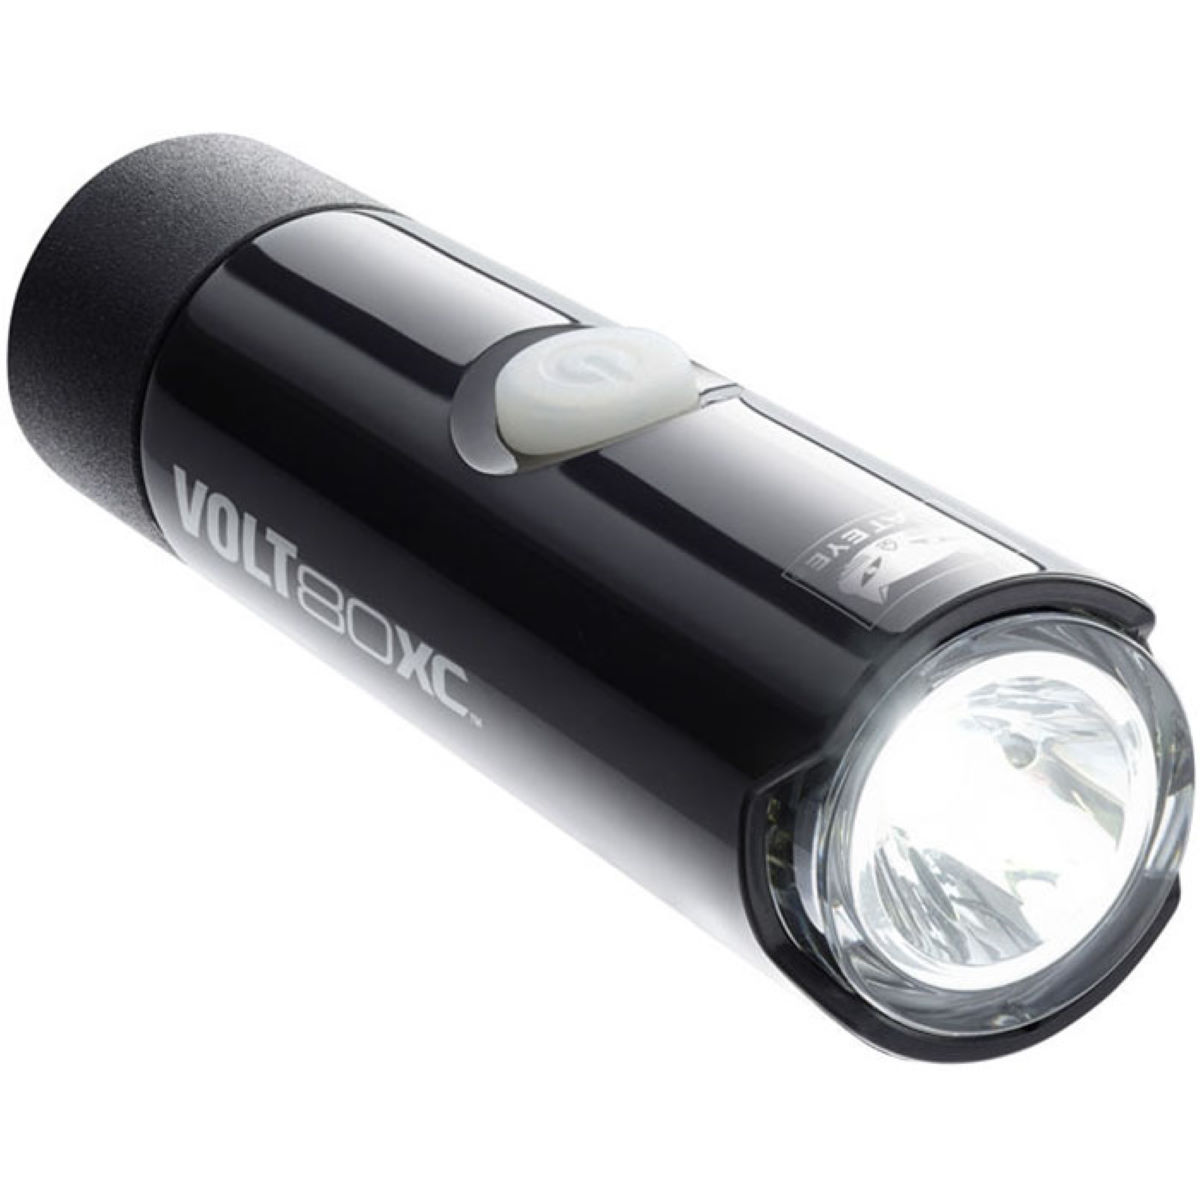 Cateye Cateye Volt 80 XC Front Light   Front Lights